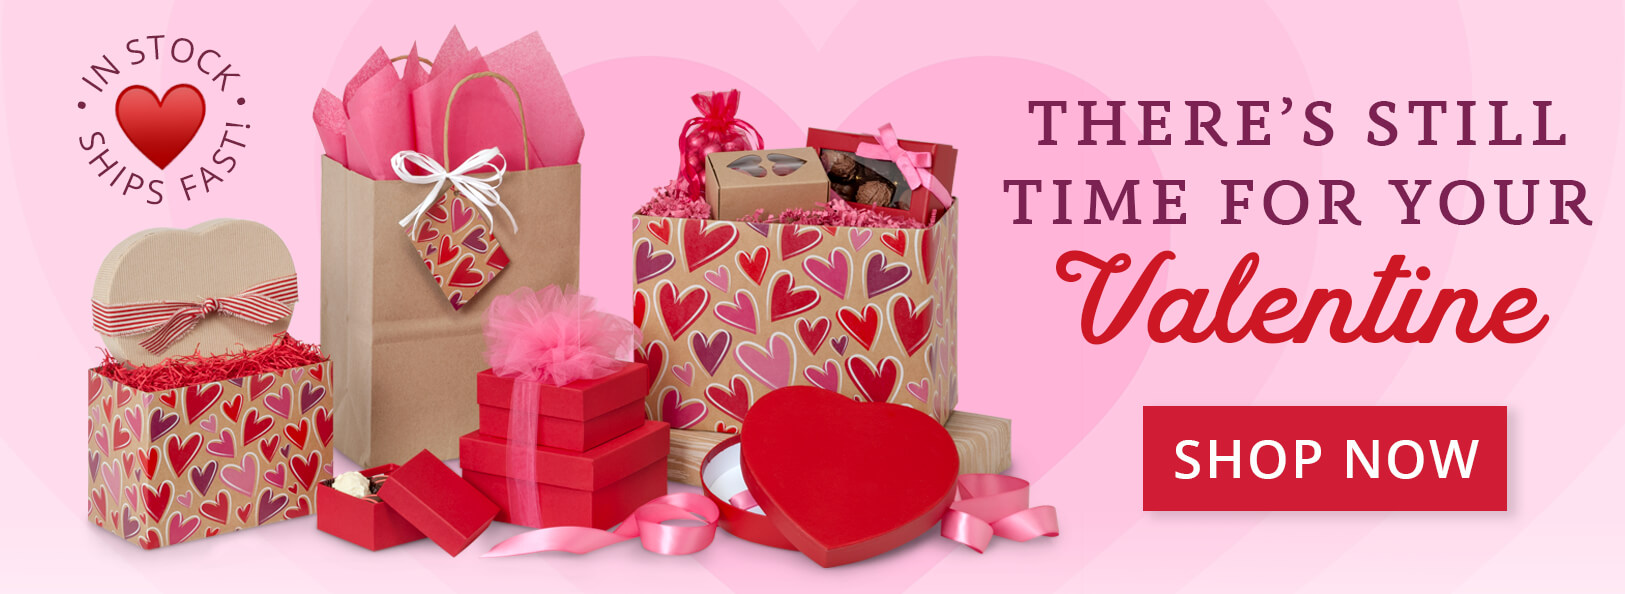 There's still time to shop for Valentine's Day! - SHOP NOW